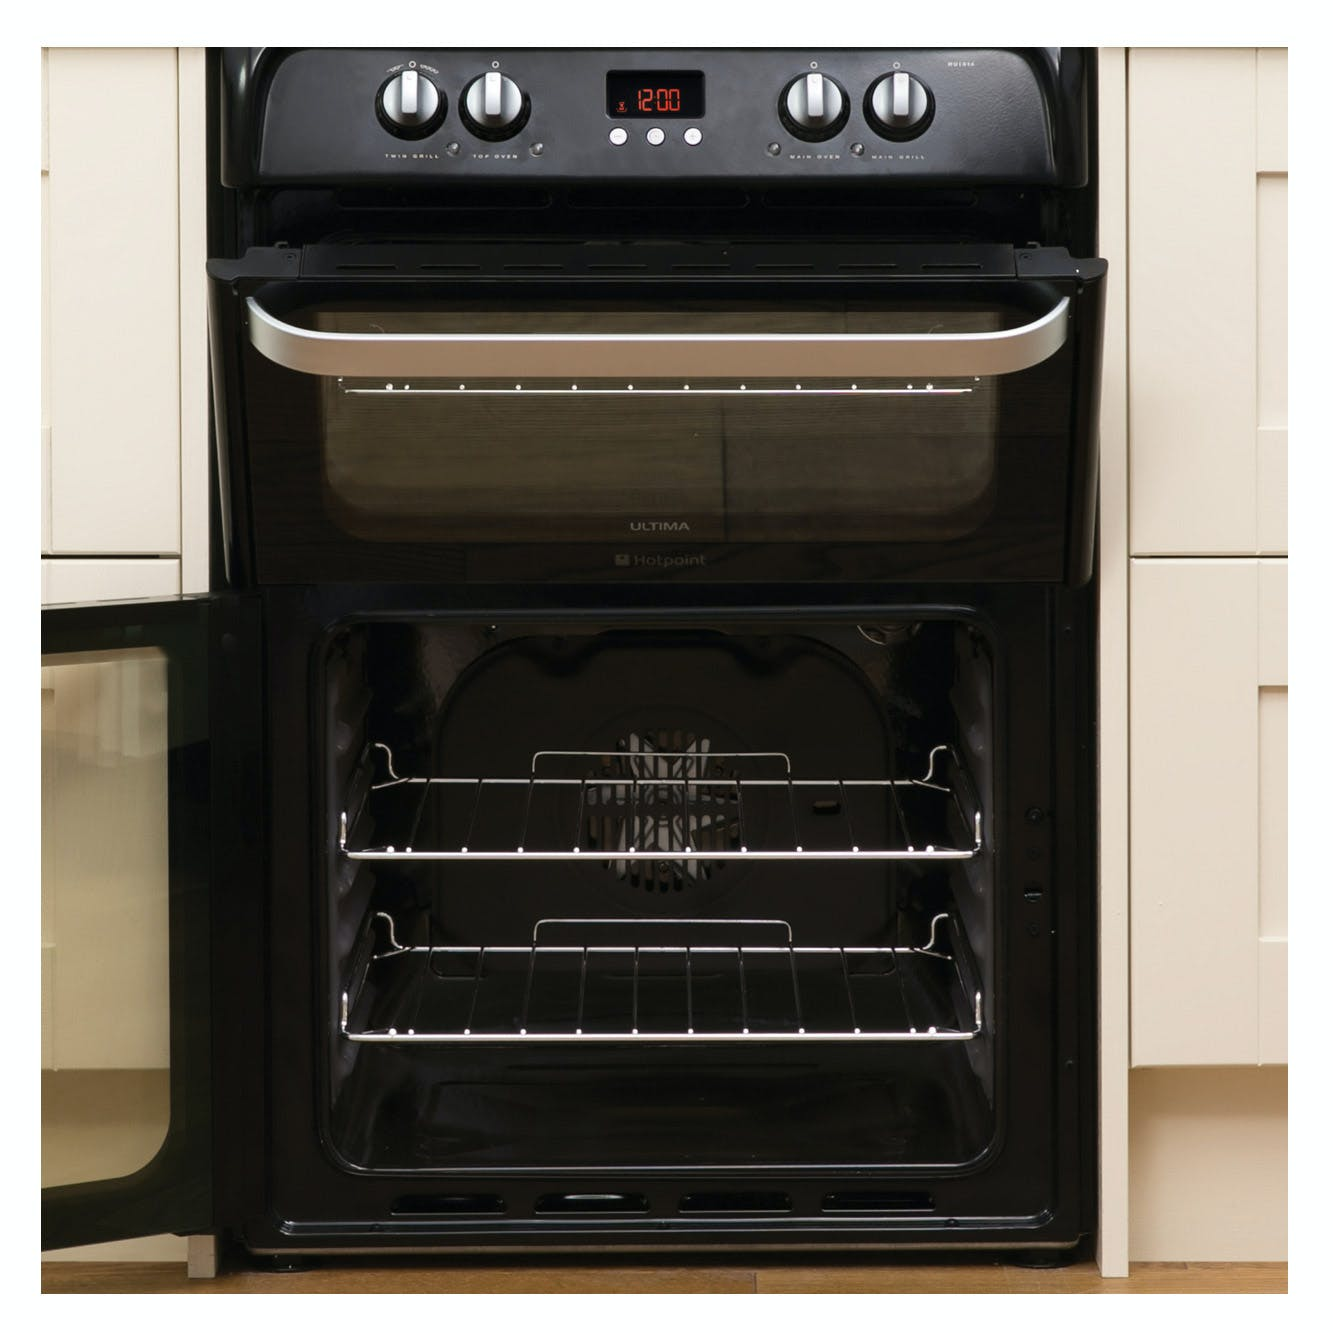 Hotpoint HUI614K 60cm Induction Electric Cooker in Black, Double Oven